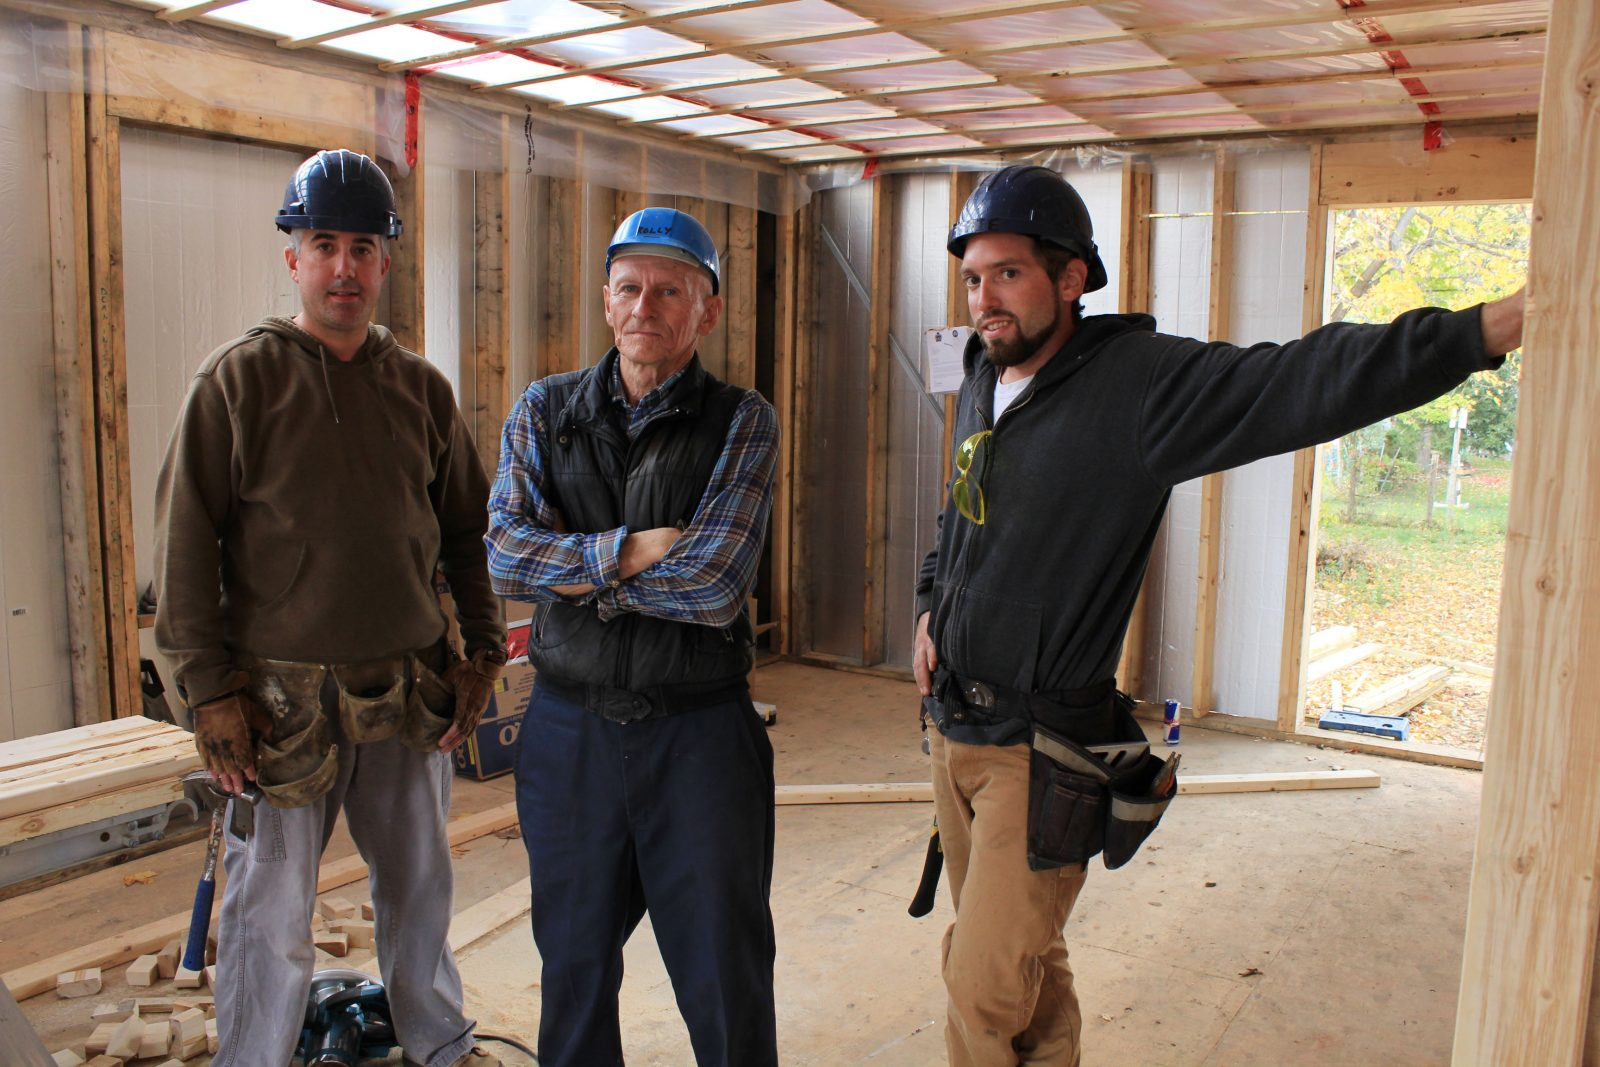 Low-income families can apply for home renovation grants